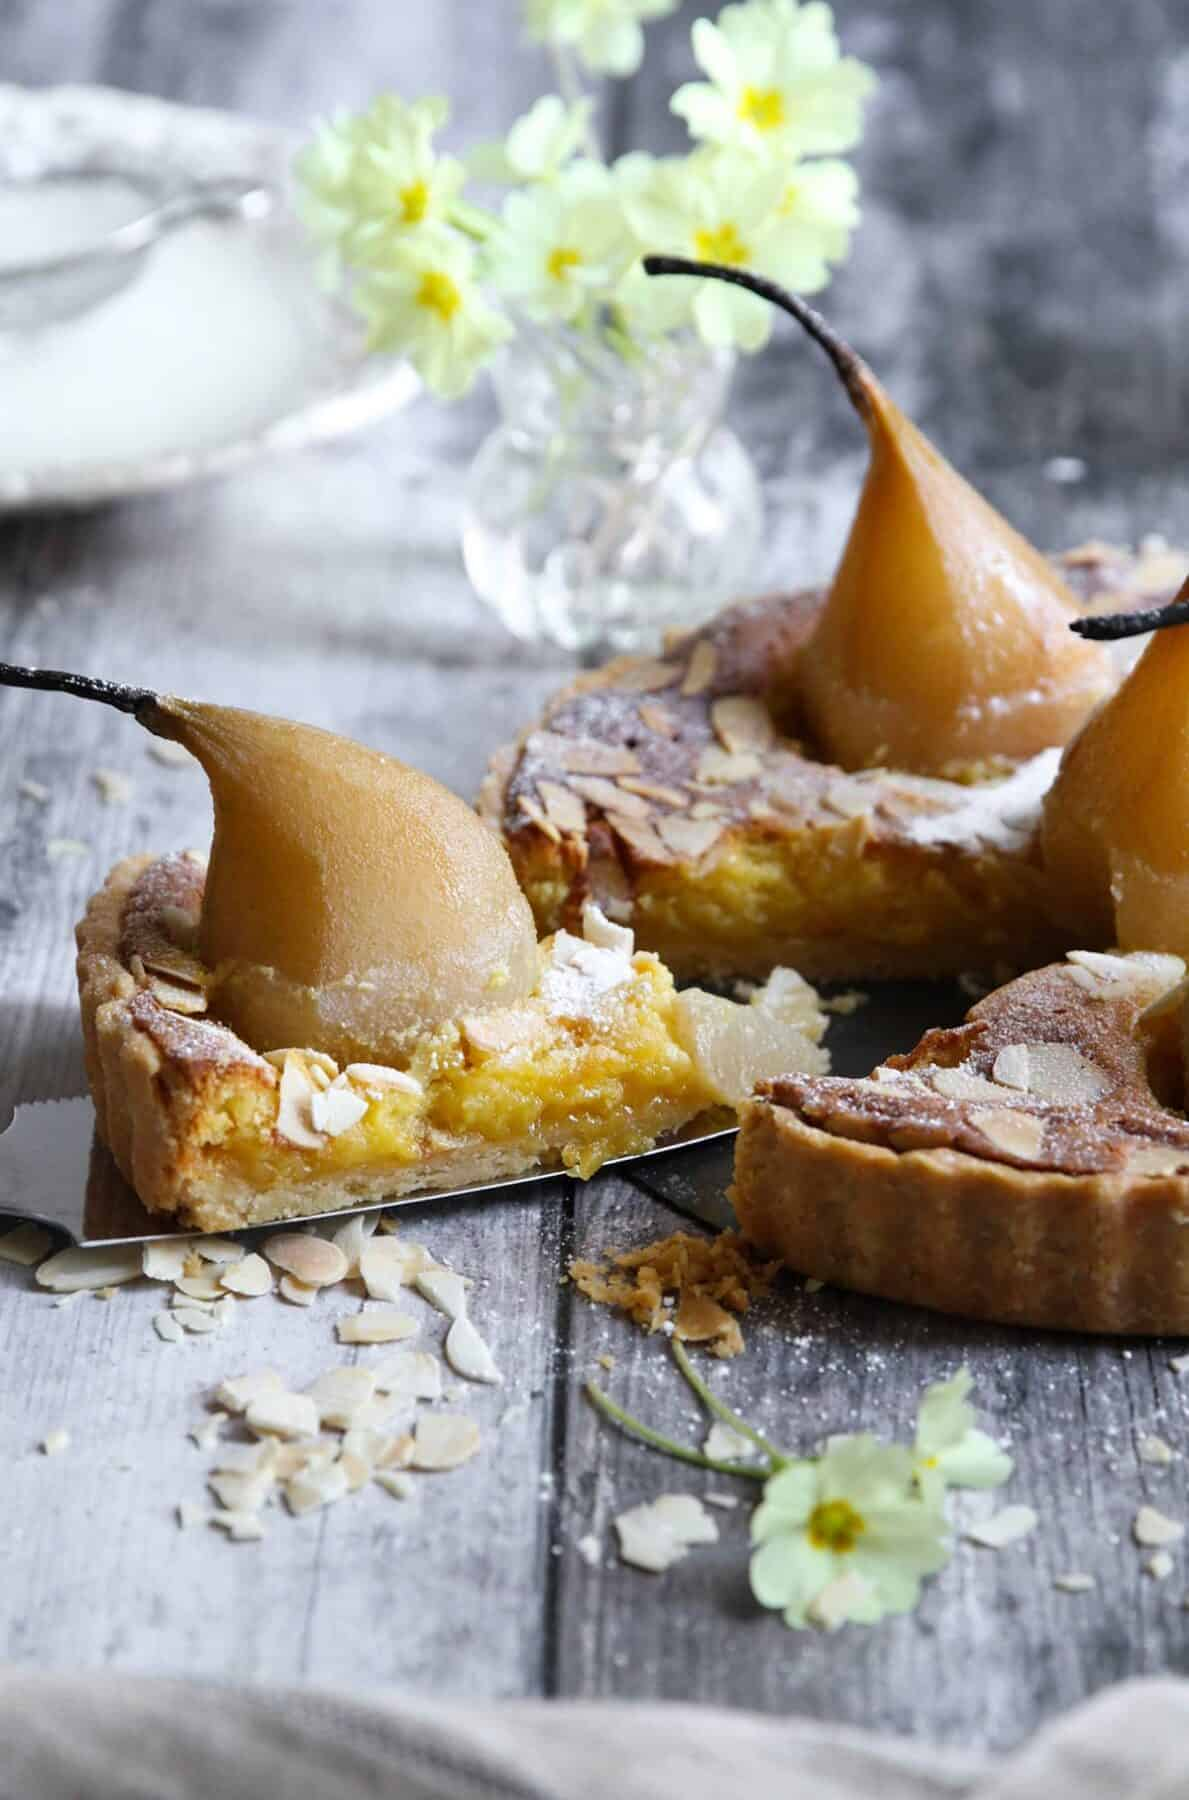 A slice with a whole pear cut out of the tarte bourdaloue.